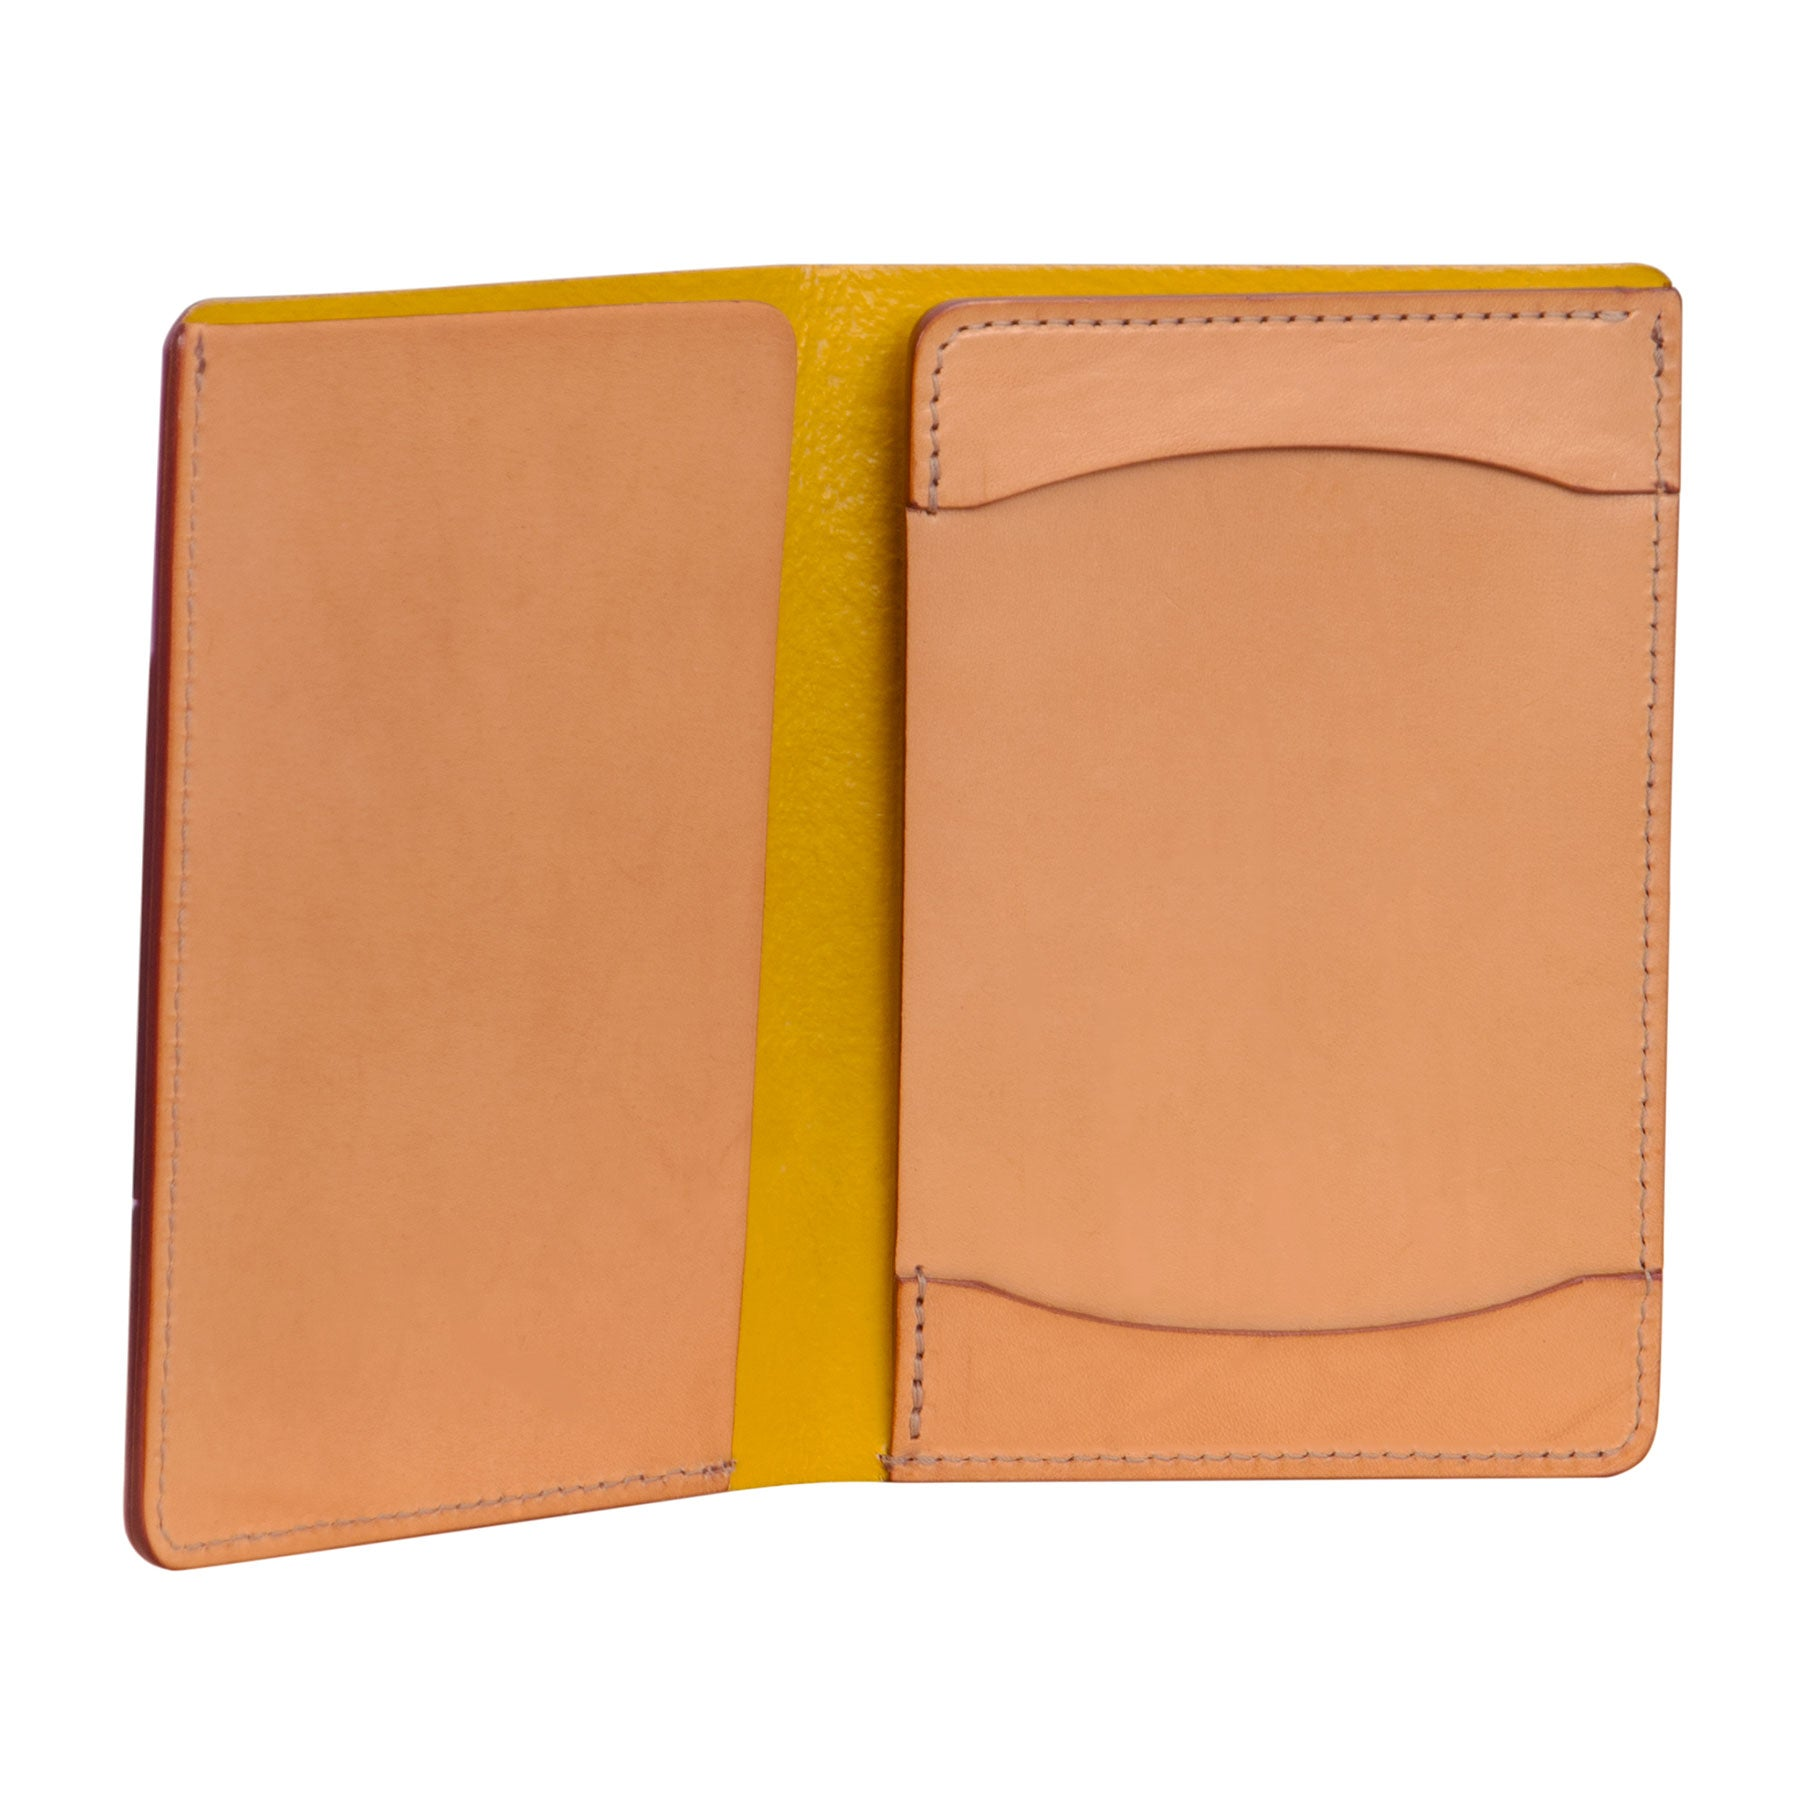 Passport Wallet with Memo Jotter: Hand-Burnished Leather